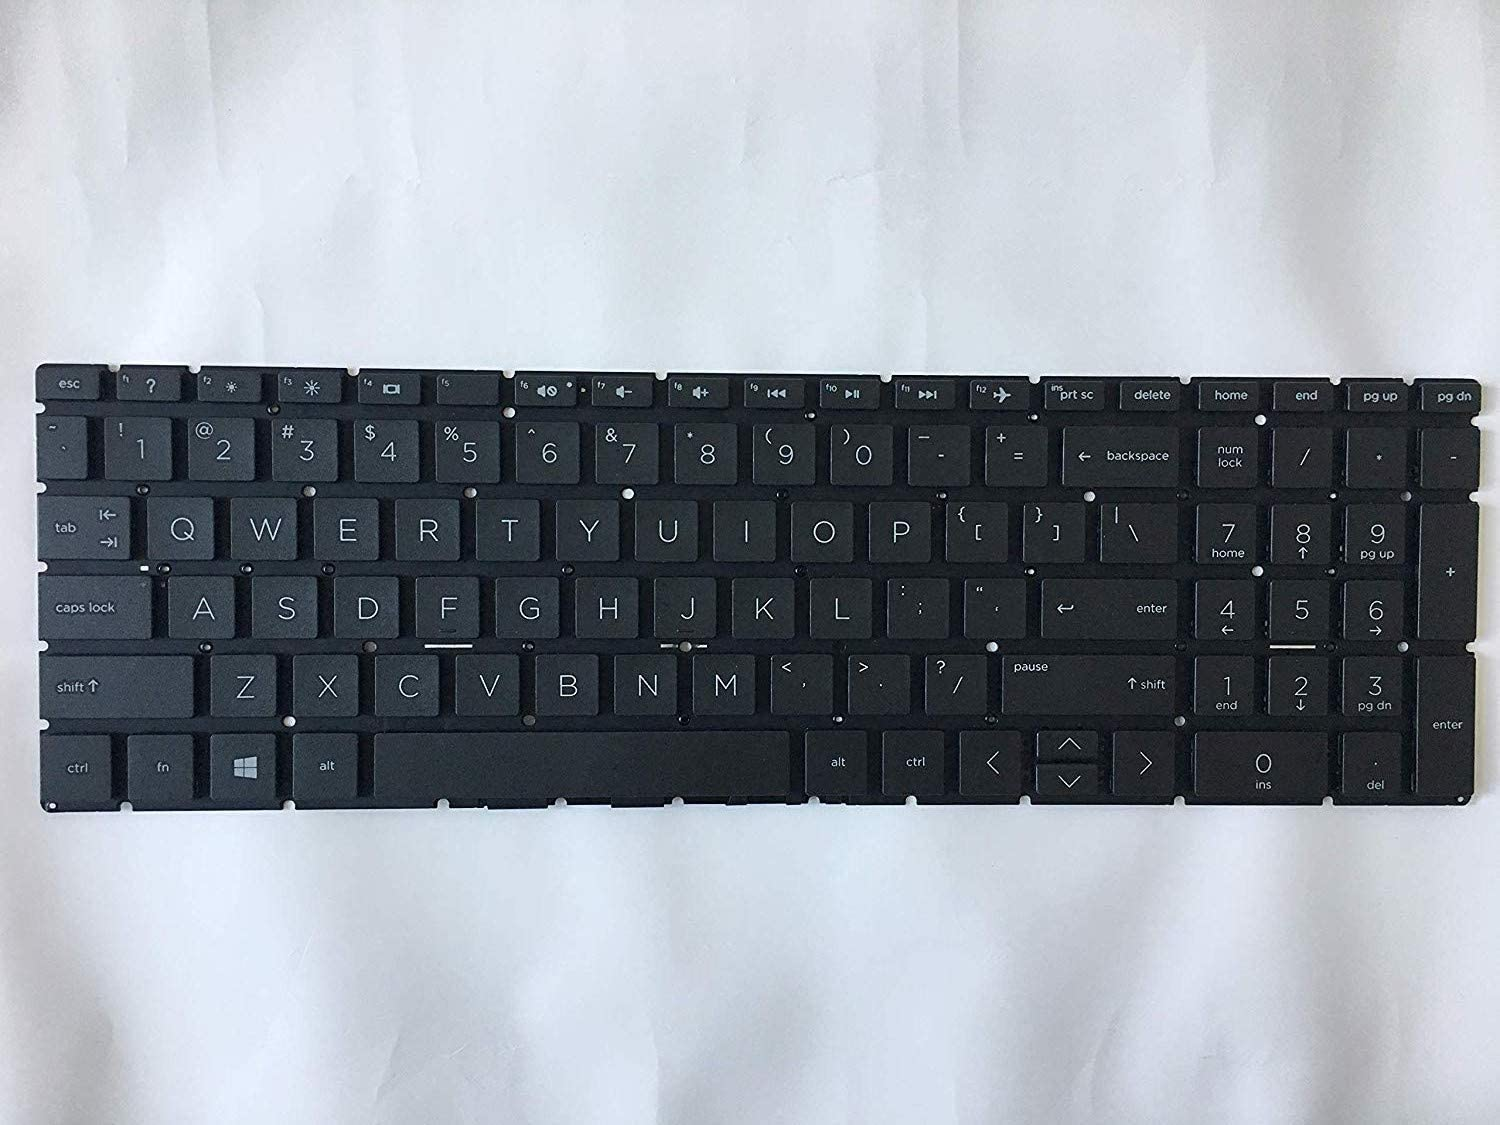 Laptop Replacement of New US Black Keyboard Fit HP 15-DA0020NR 15-DA0034NR 15-DA0033WM 15-DA0053WM 15-DA0073WM 15-DA0043NR,no Frame